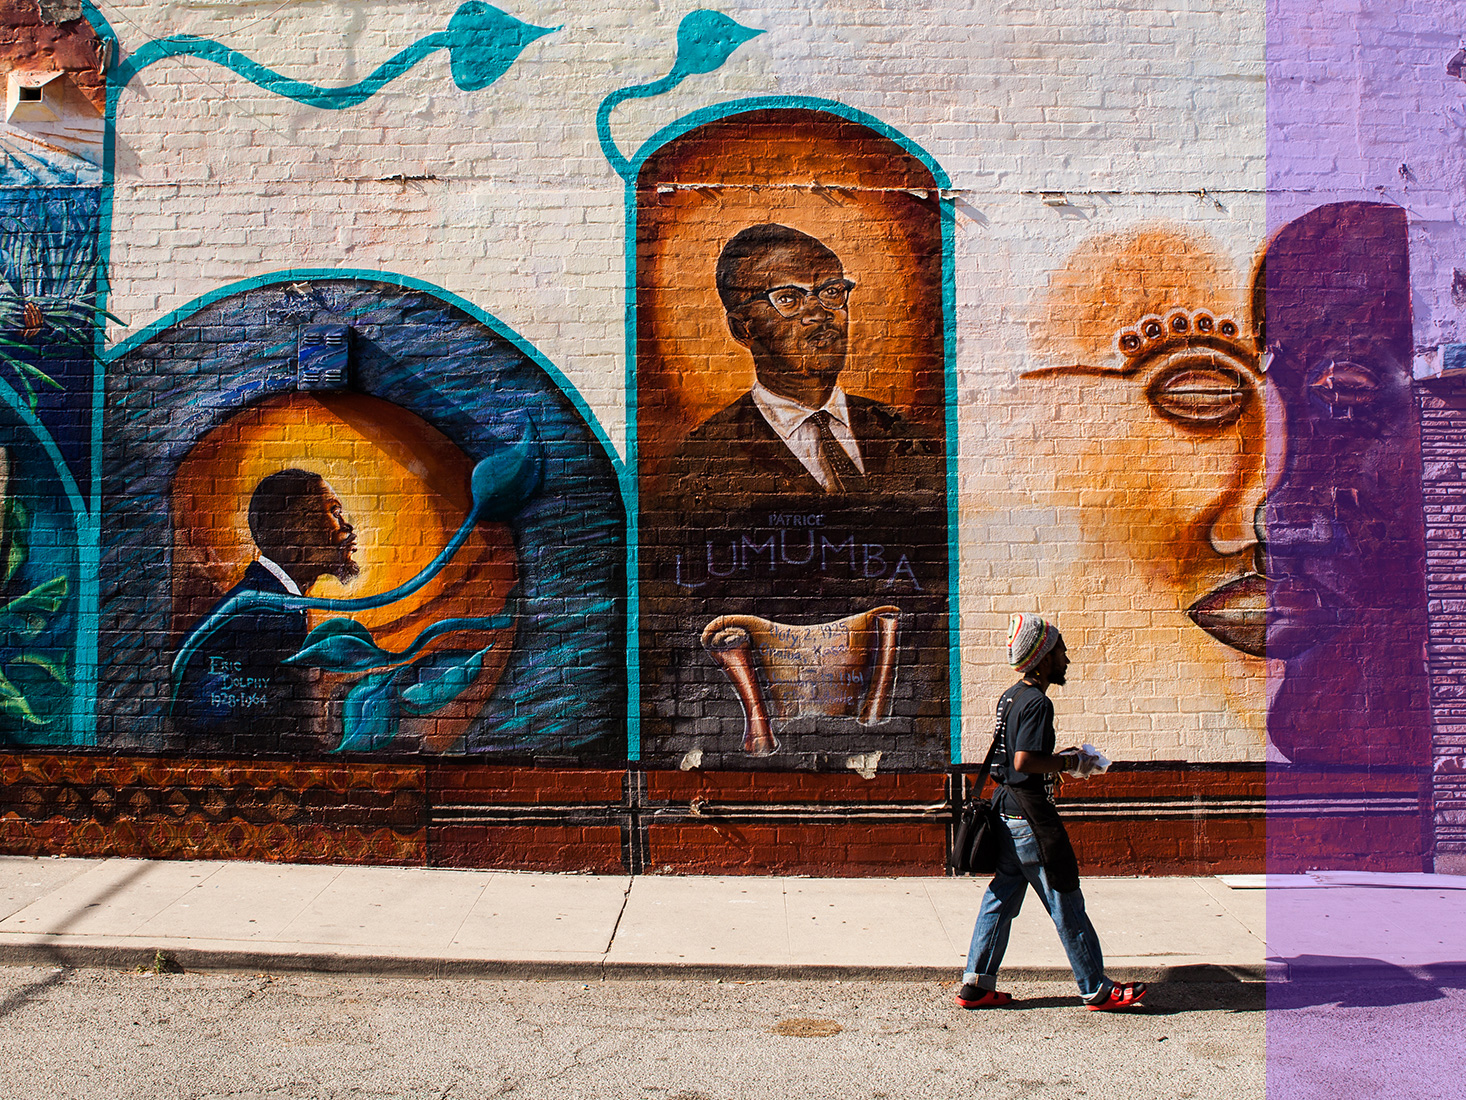 A woman walks by a large mural in the Liemert Park Village section of L.A.